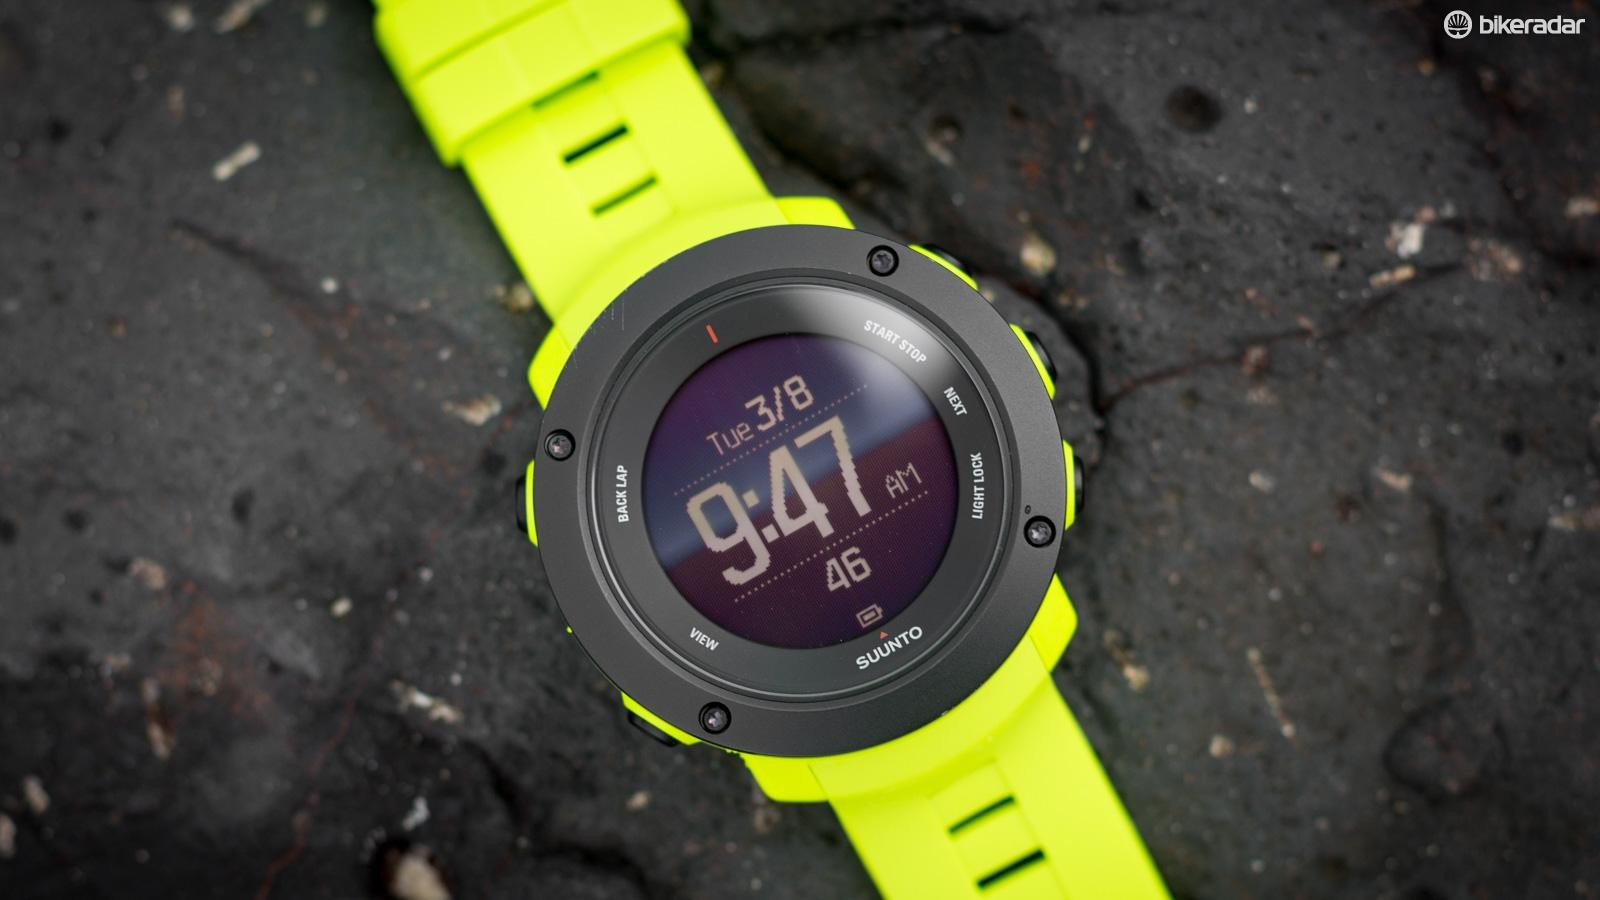 Best gps and smartwatches for cycling how to choose the right one for you bikeradar for Watches with gps